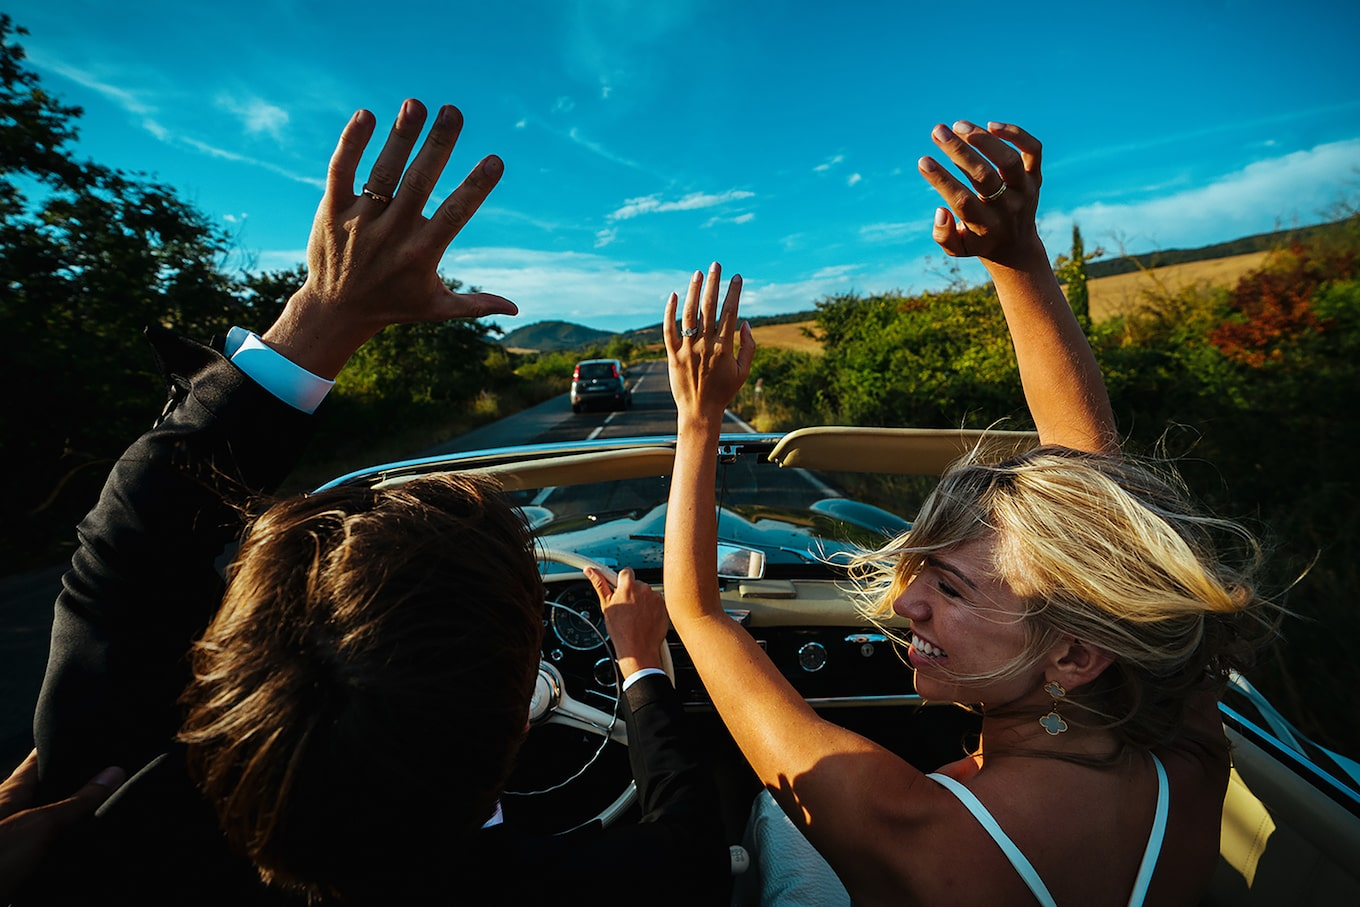 George-Kasionis-&-Stam-Tsopanakis-sony-alpha-7III-couple-waving-their-arms-in-the-air-like-they-just-dont-care